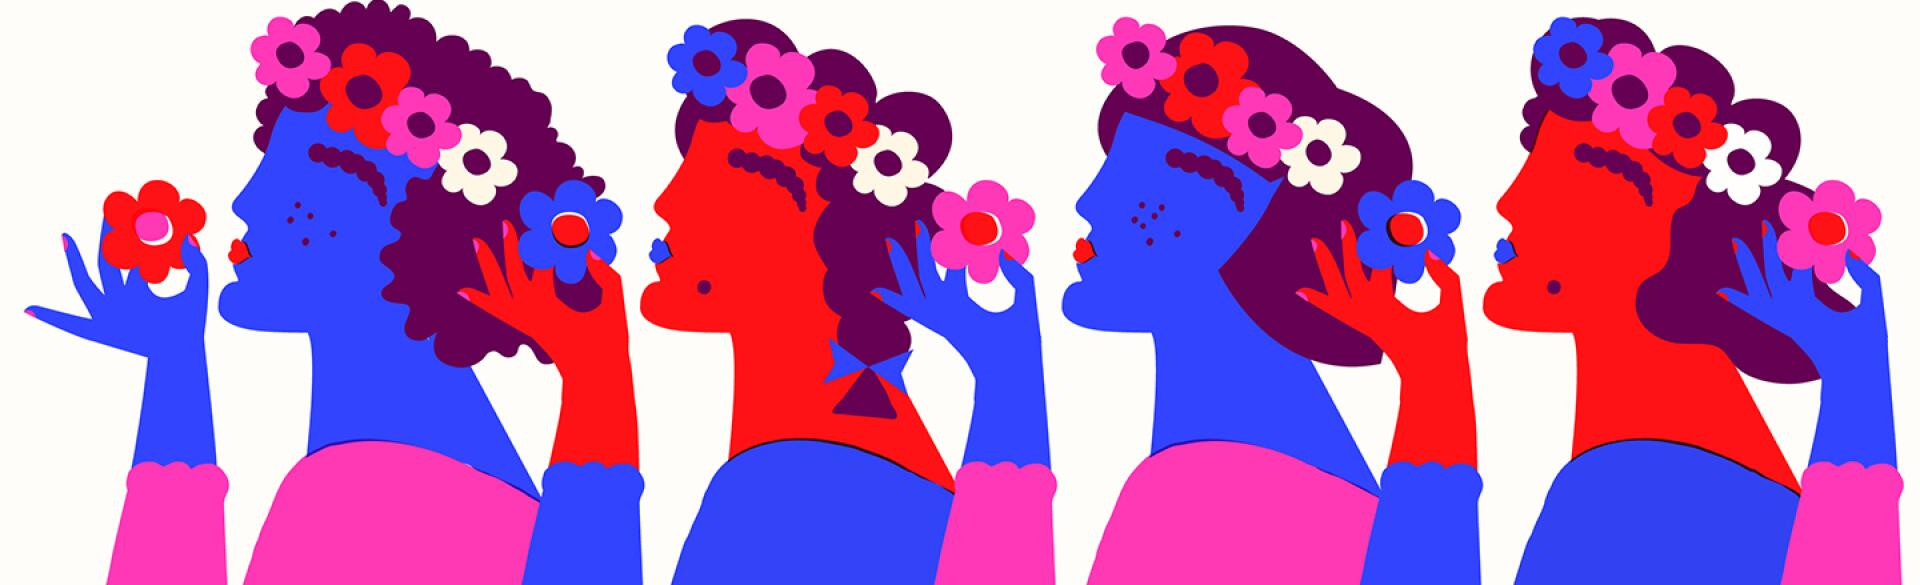 illustration_of_women_putting_flowers_in_their_hair_by_amrita_marino_1440x584